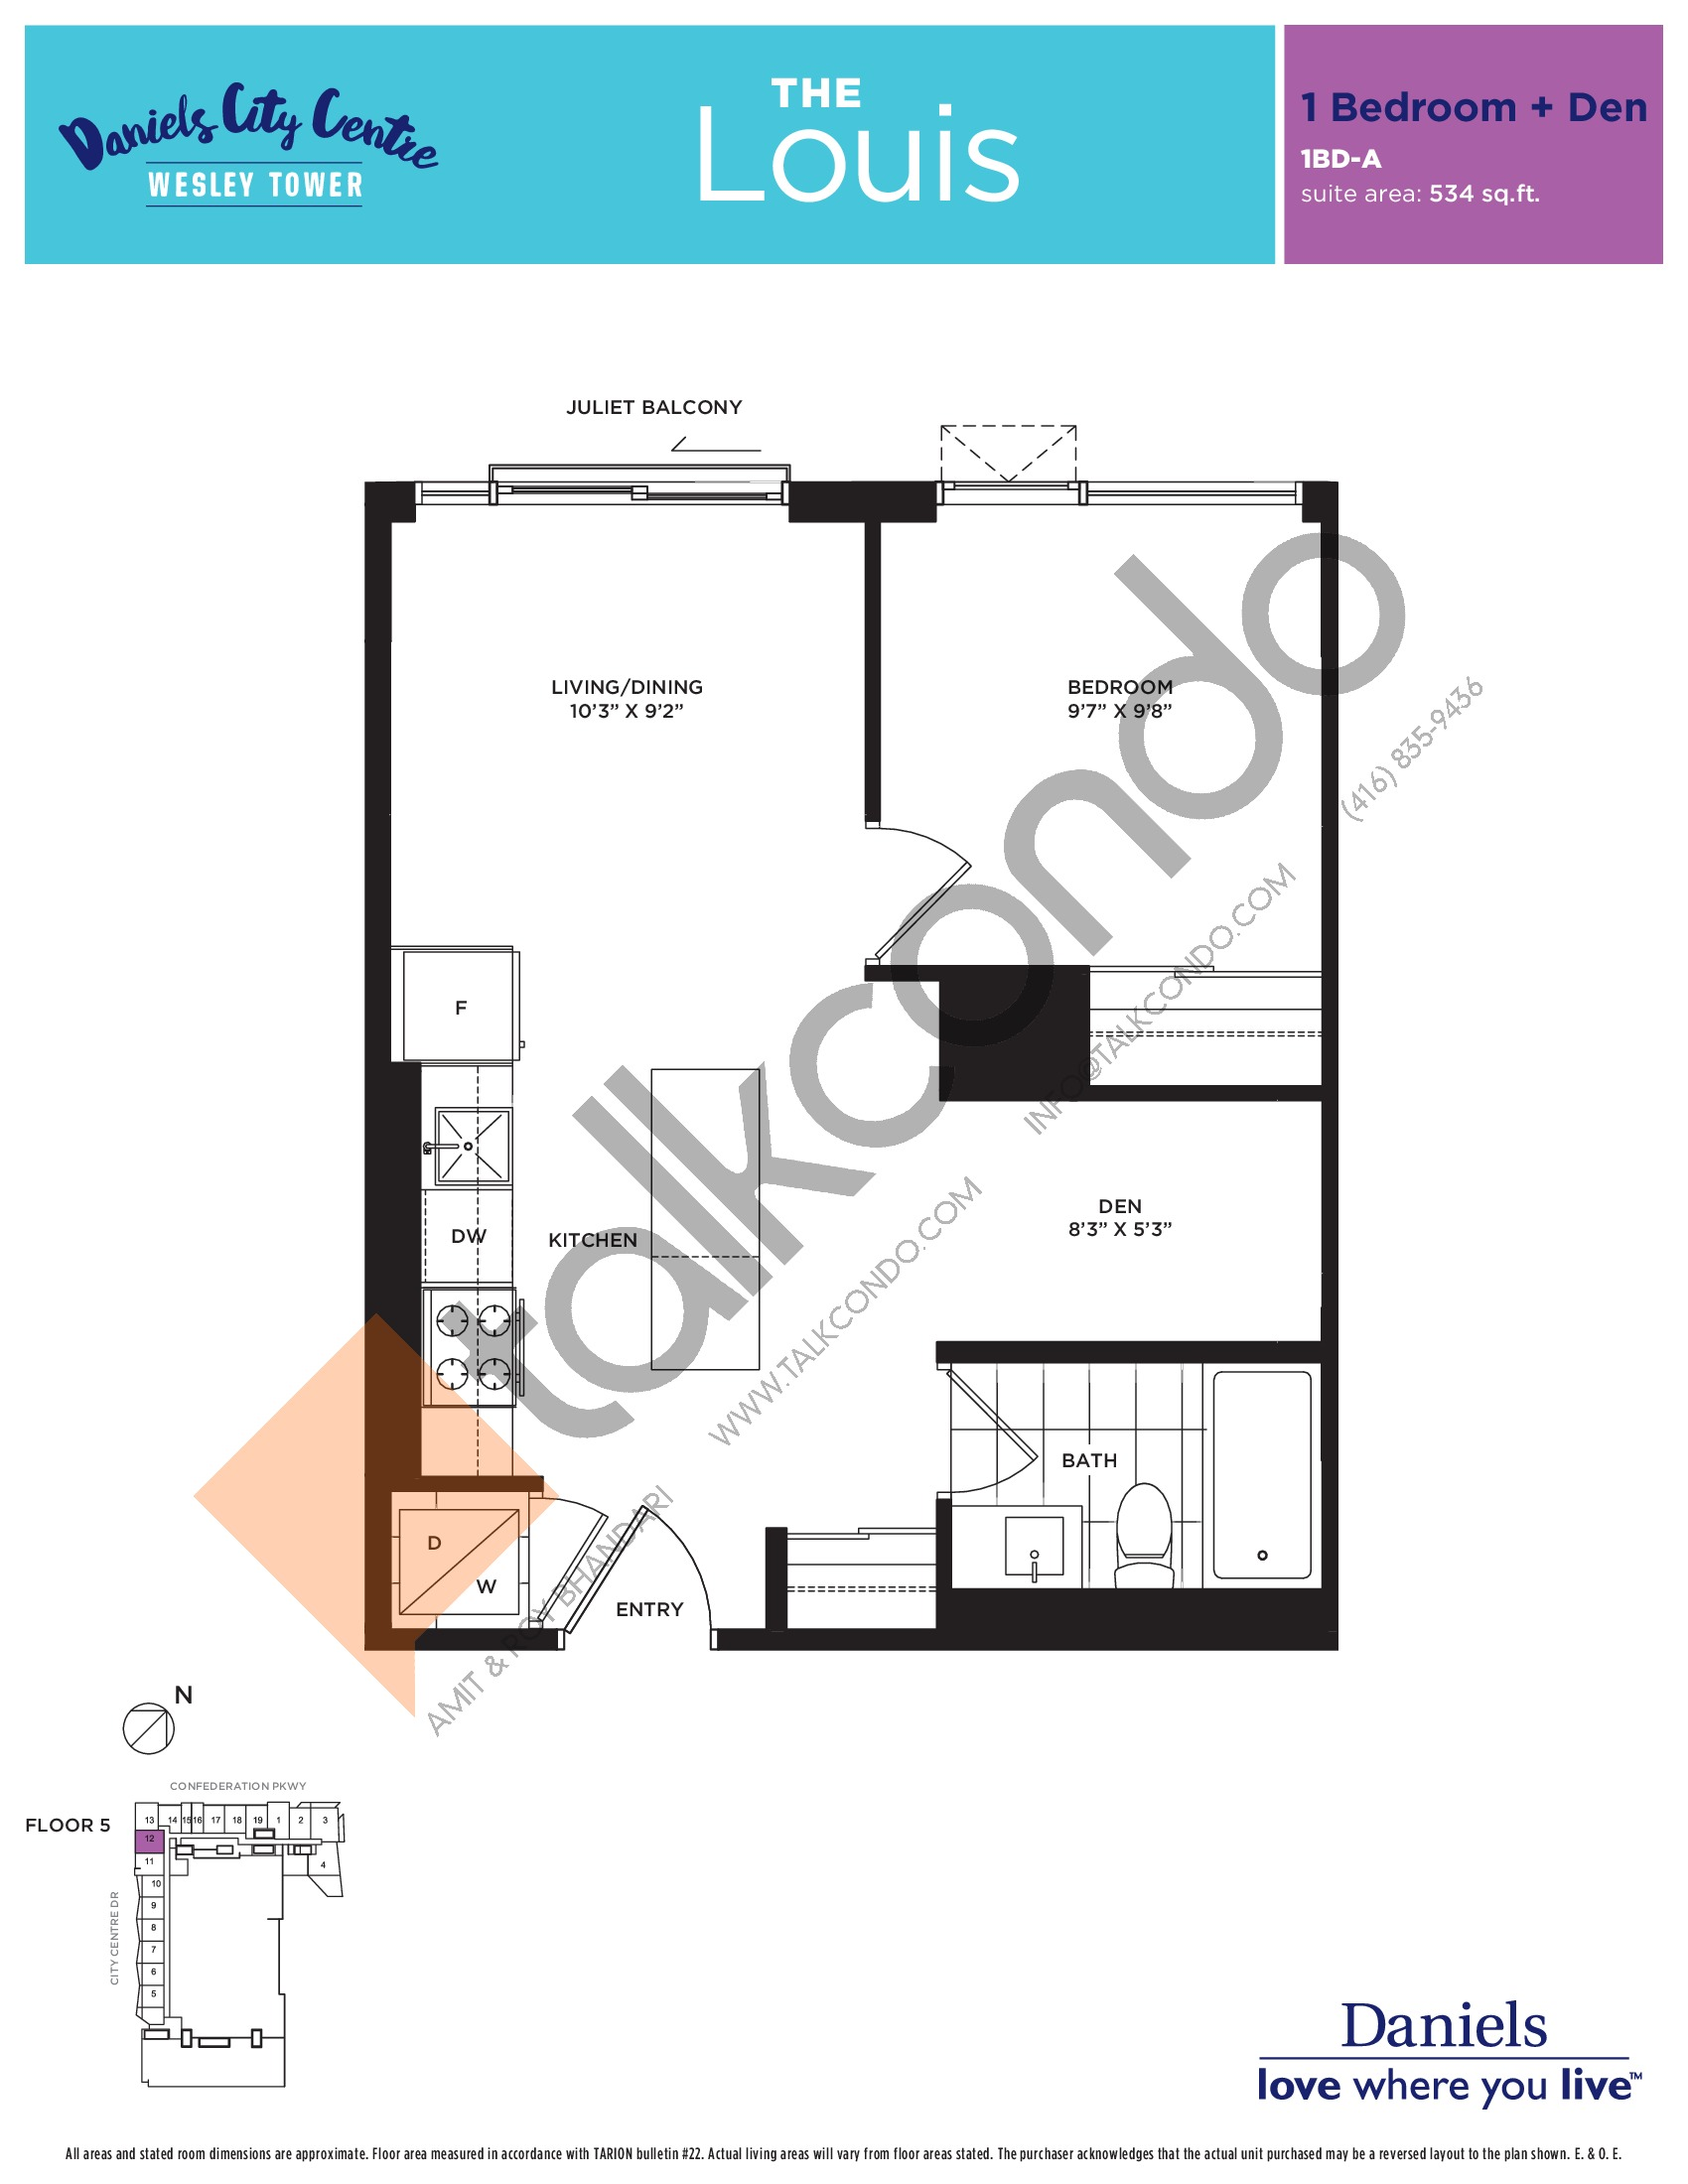 The Louis Floor Plan at The Wesley Tower at Daniels City Centre Condos - 534 sq.ft